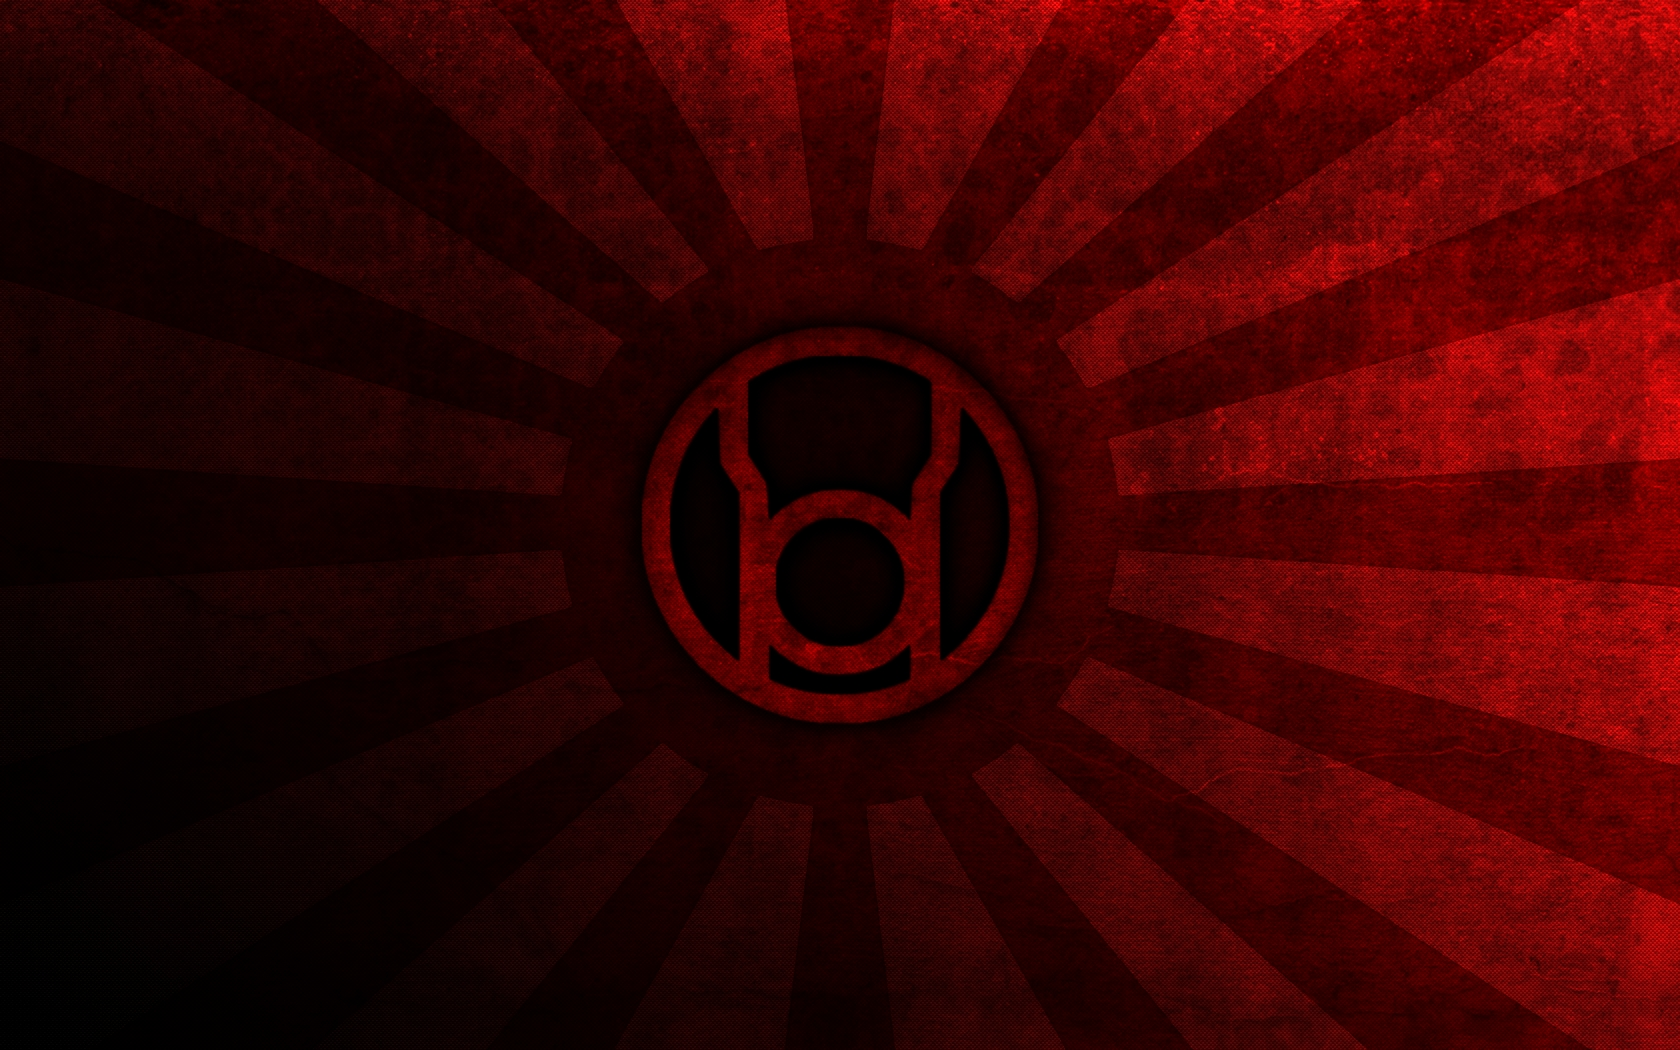 Red lantern corps symbol wallpaper - photo#7